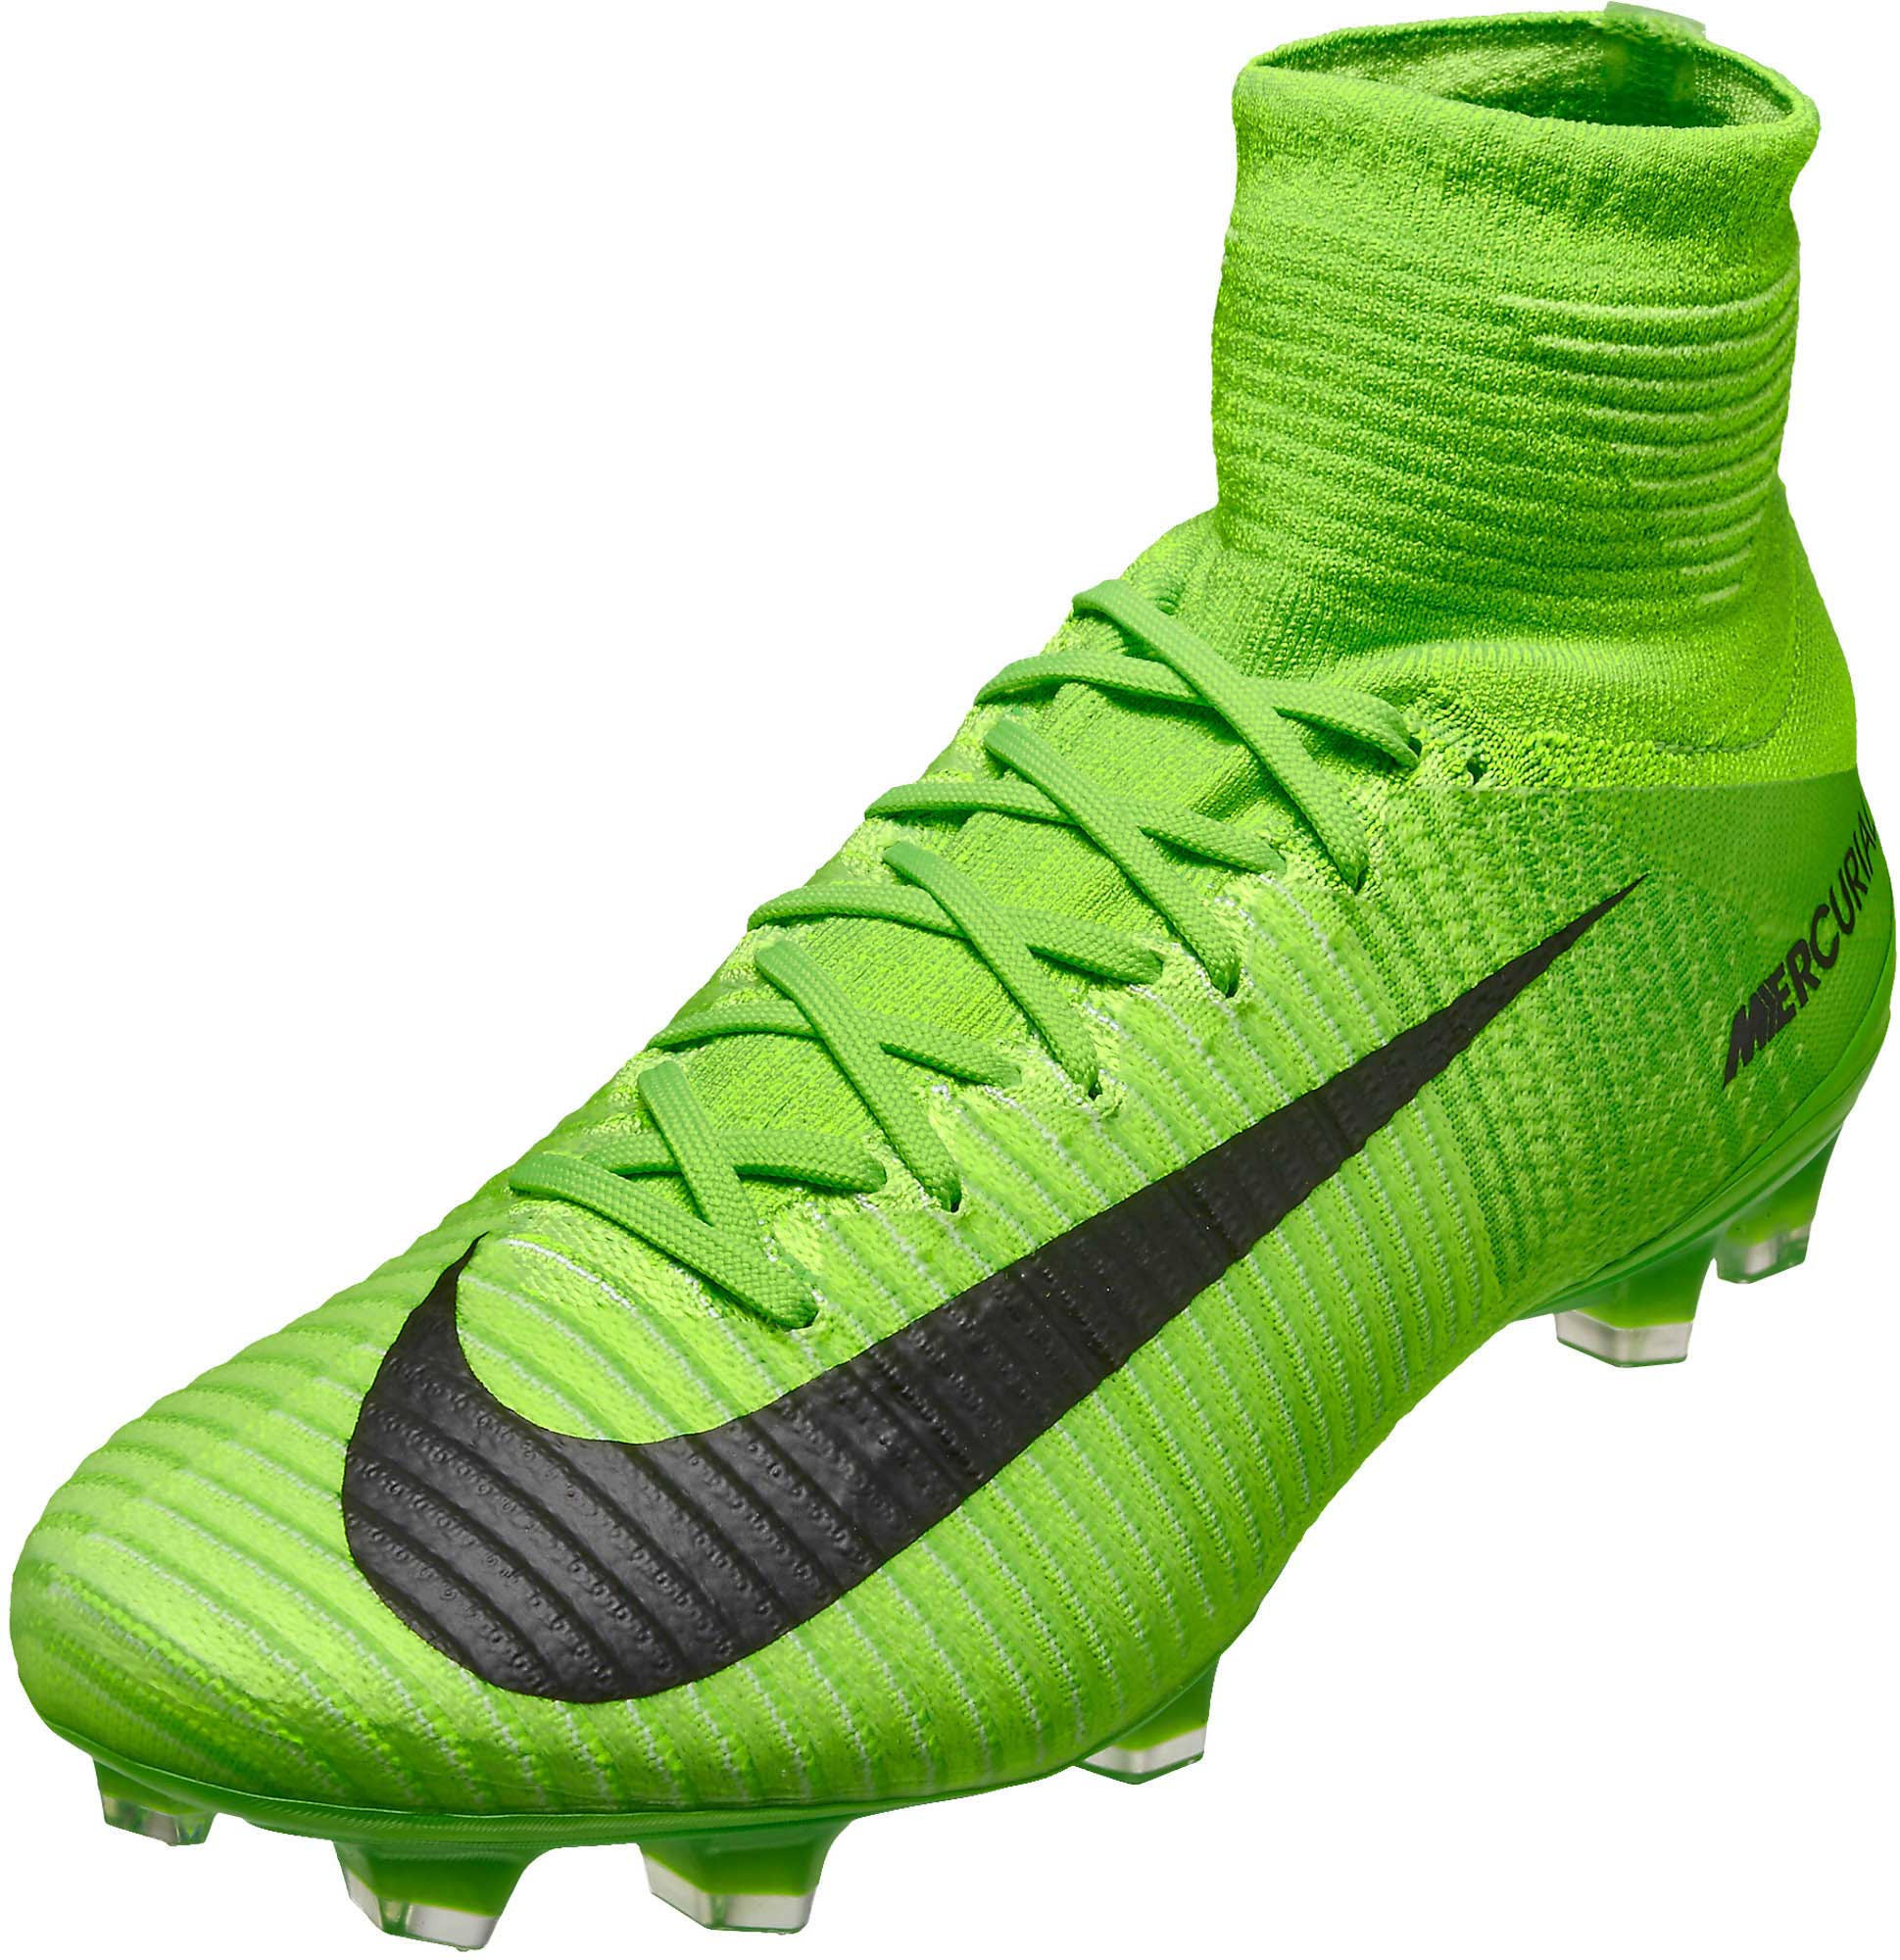 quality design 195b9 24e8b Nike Mercurial Superfly V FG – Electric Green Ghost Green